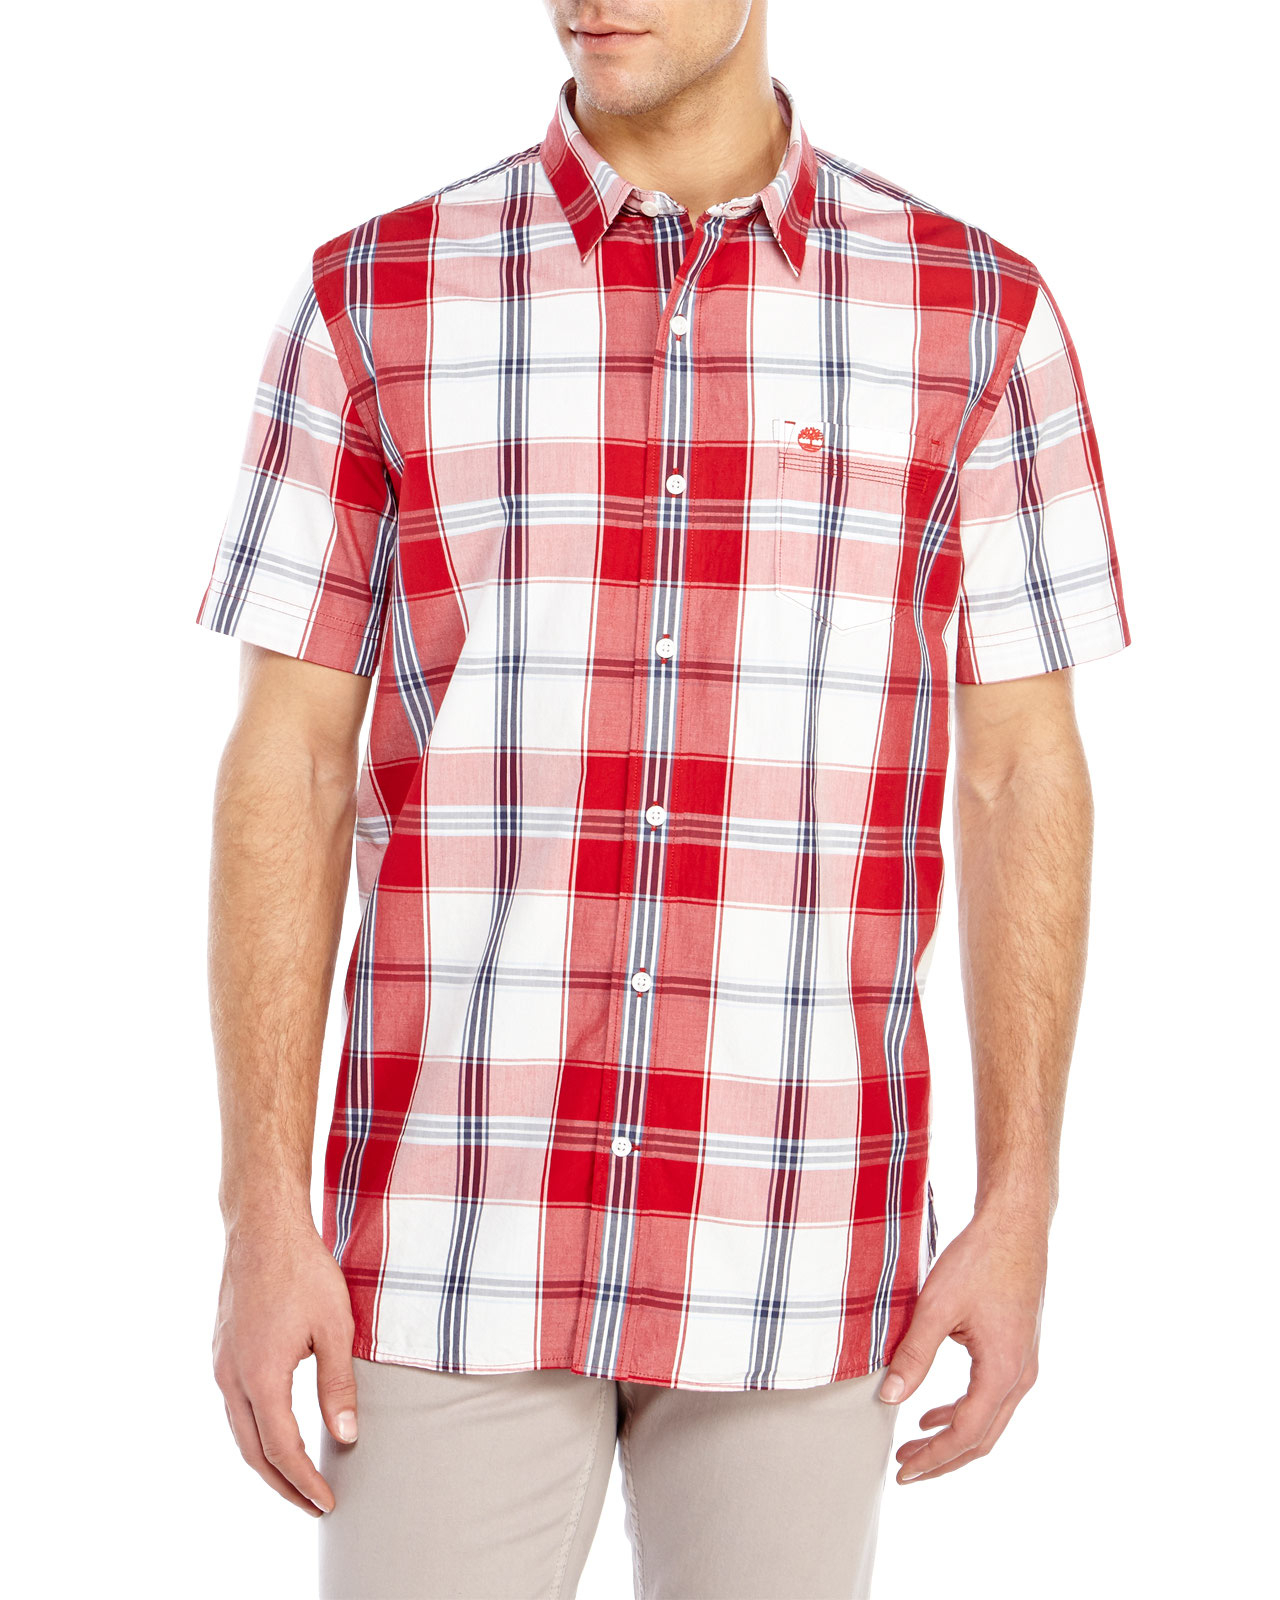 Timberland short sleeve plaid sport shirt in red for men Short sleeve plaid shirts